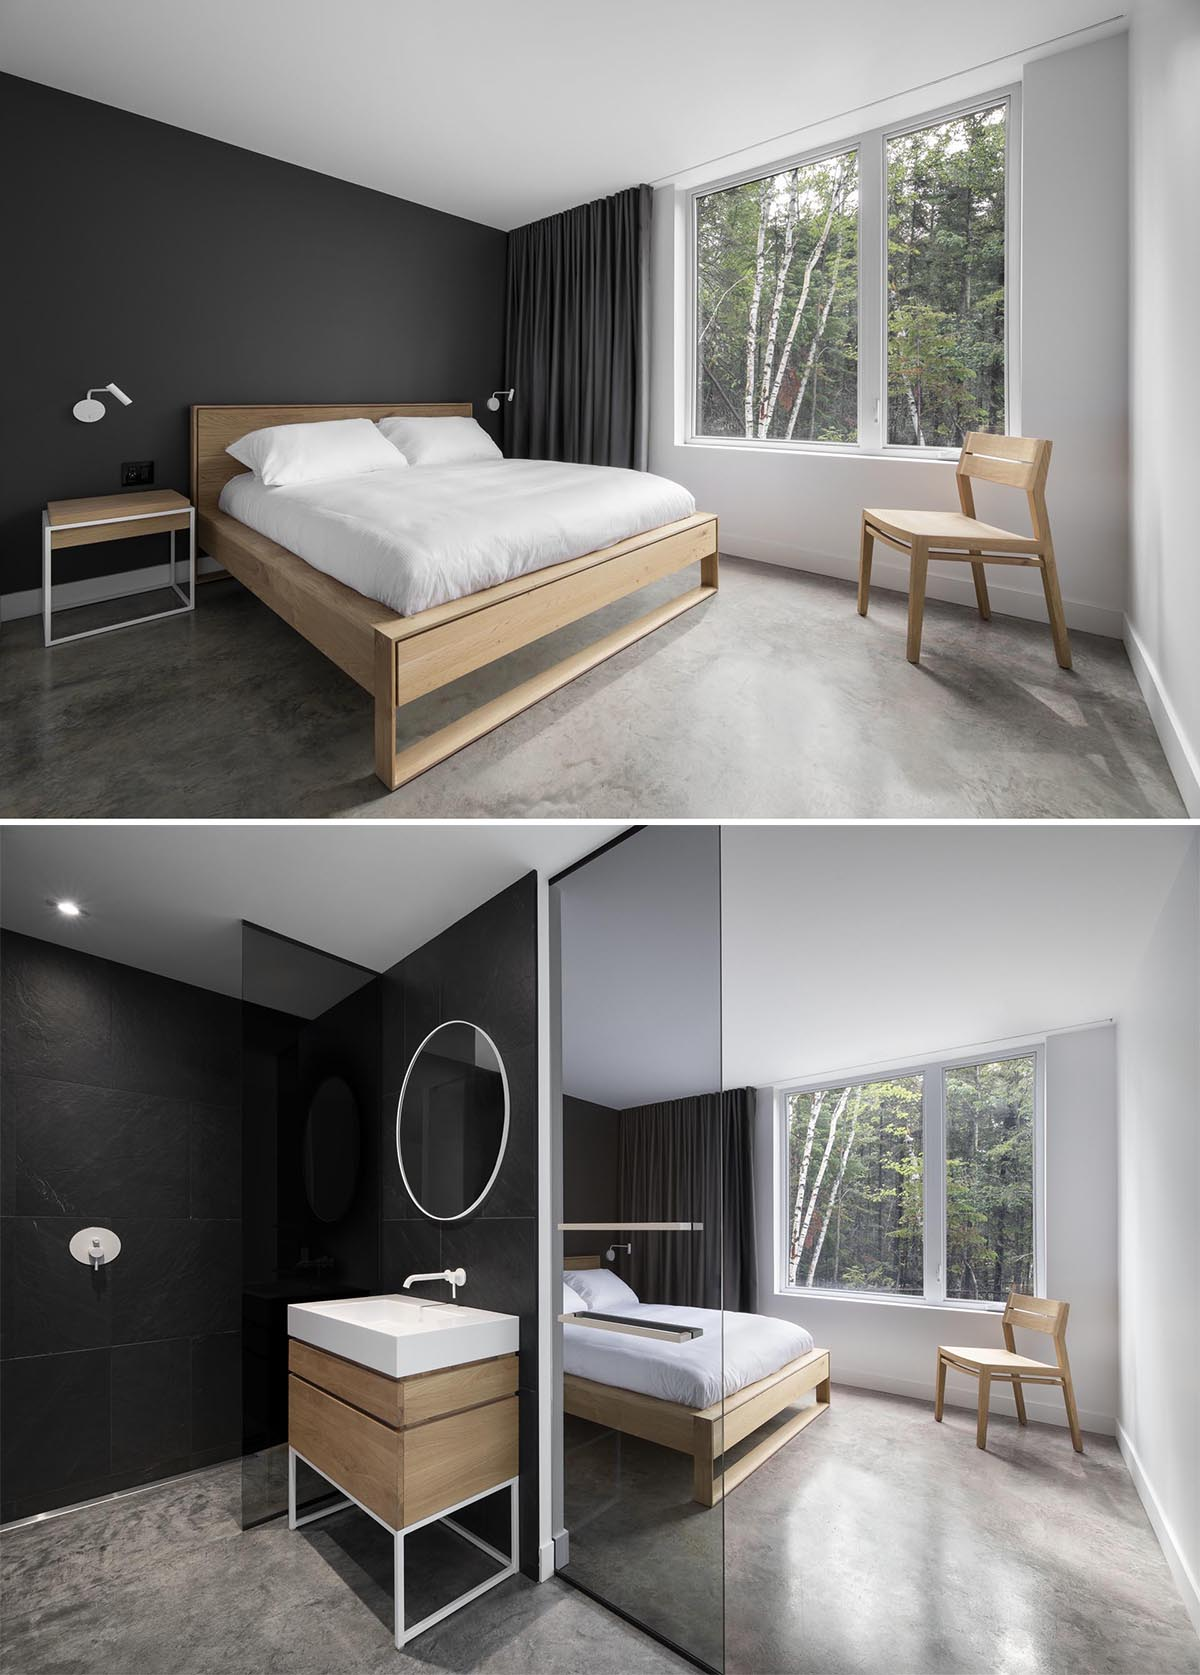 A modern bedroom with a matte black accent wall, and matching black curtains, and a black and white en-suite bathroom.